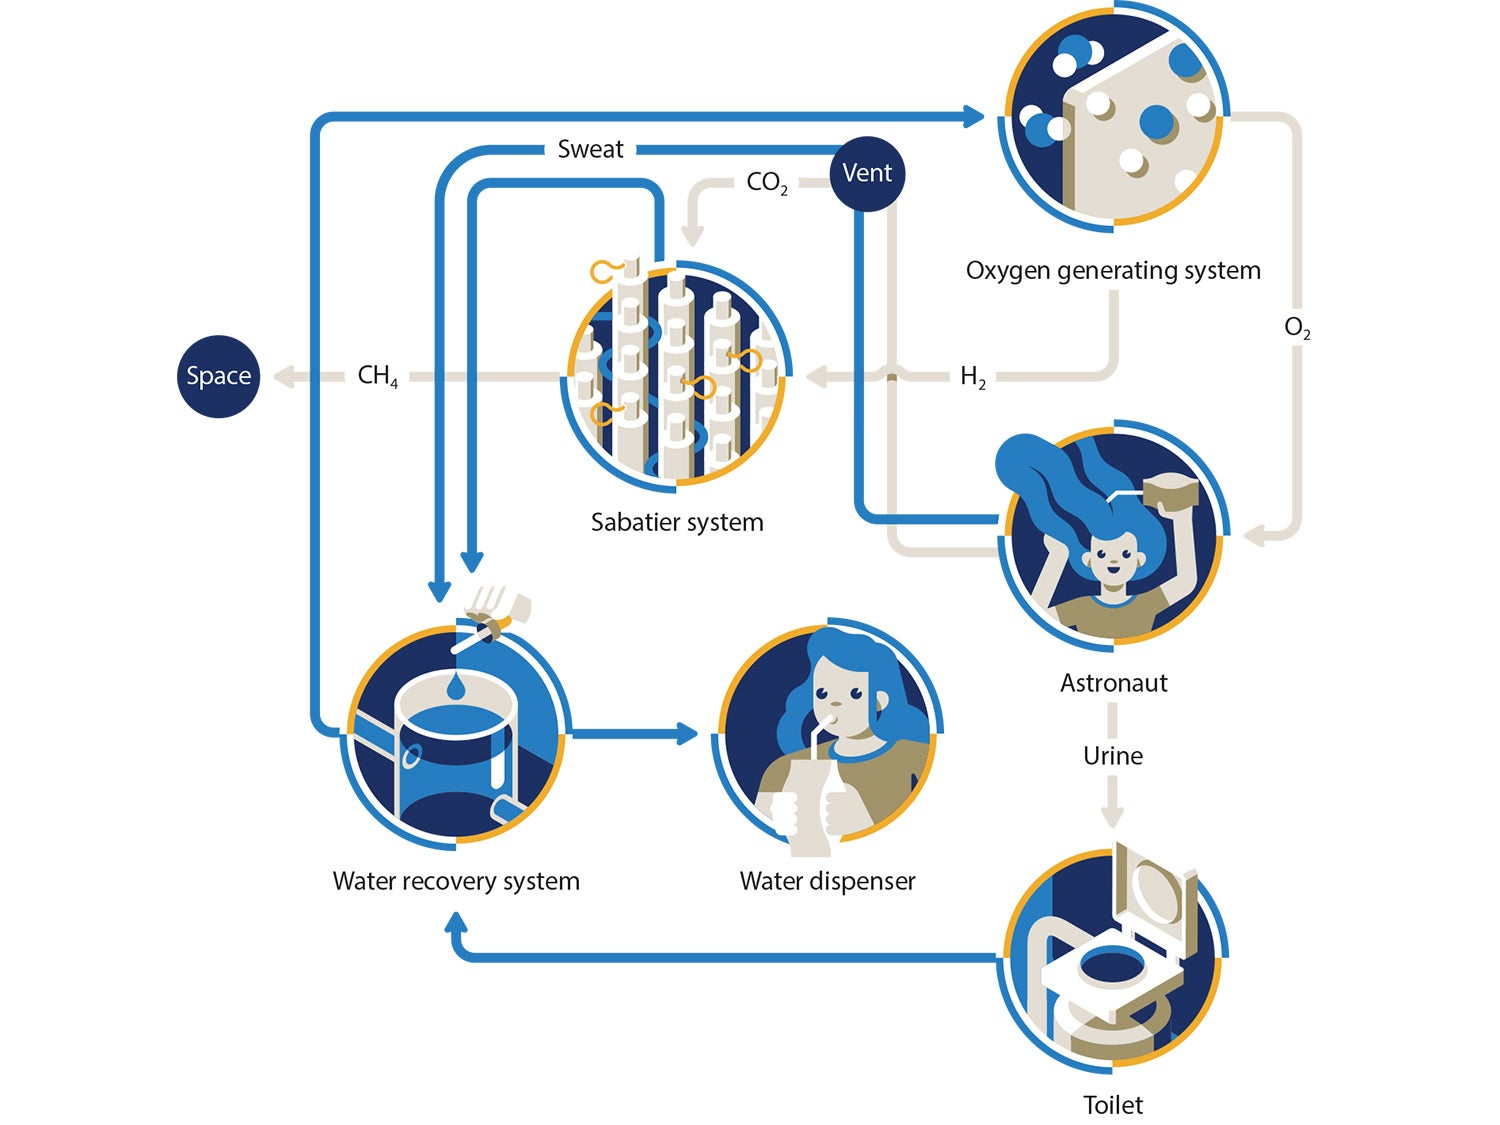 How the ISS recycles its air and water